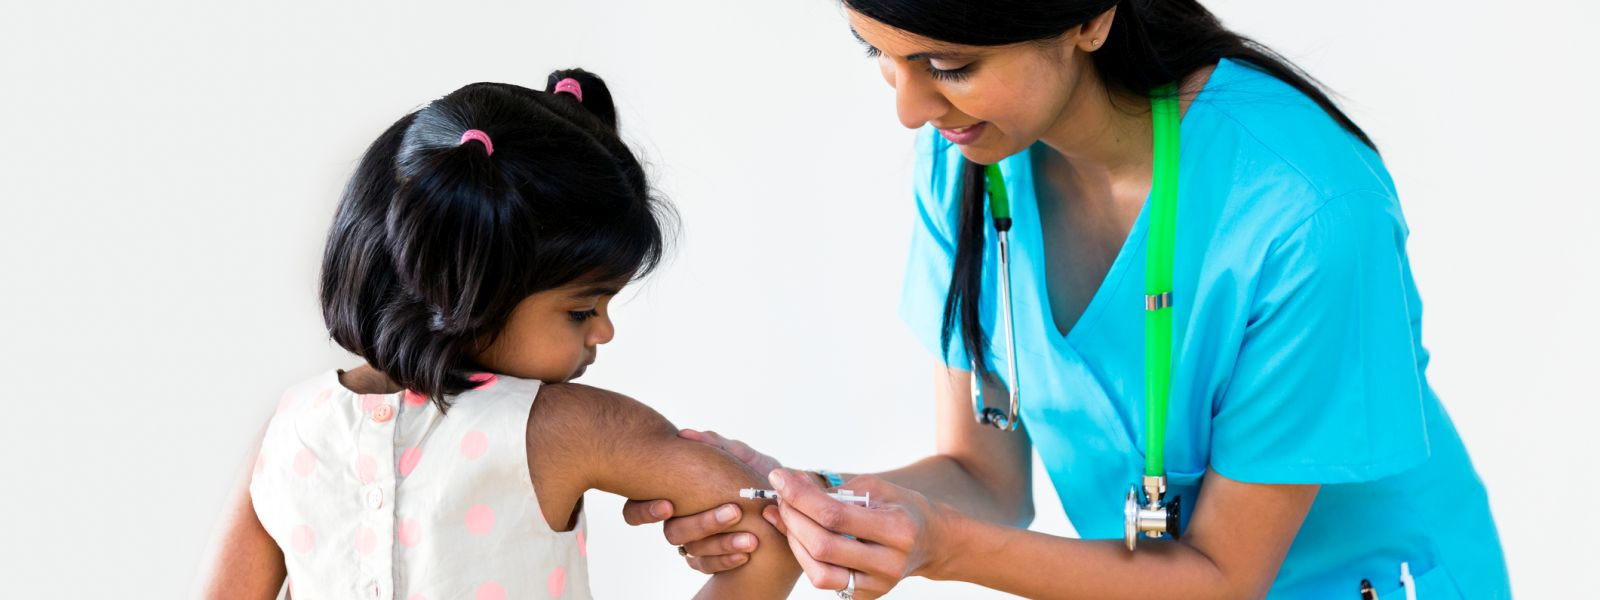 Child receiving an injection from female doctor.